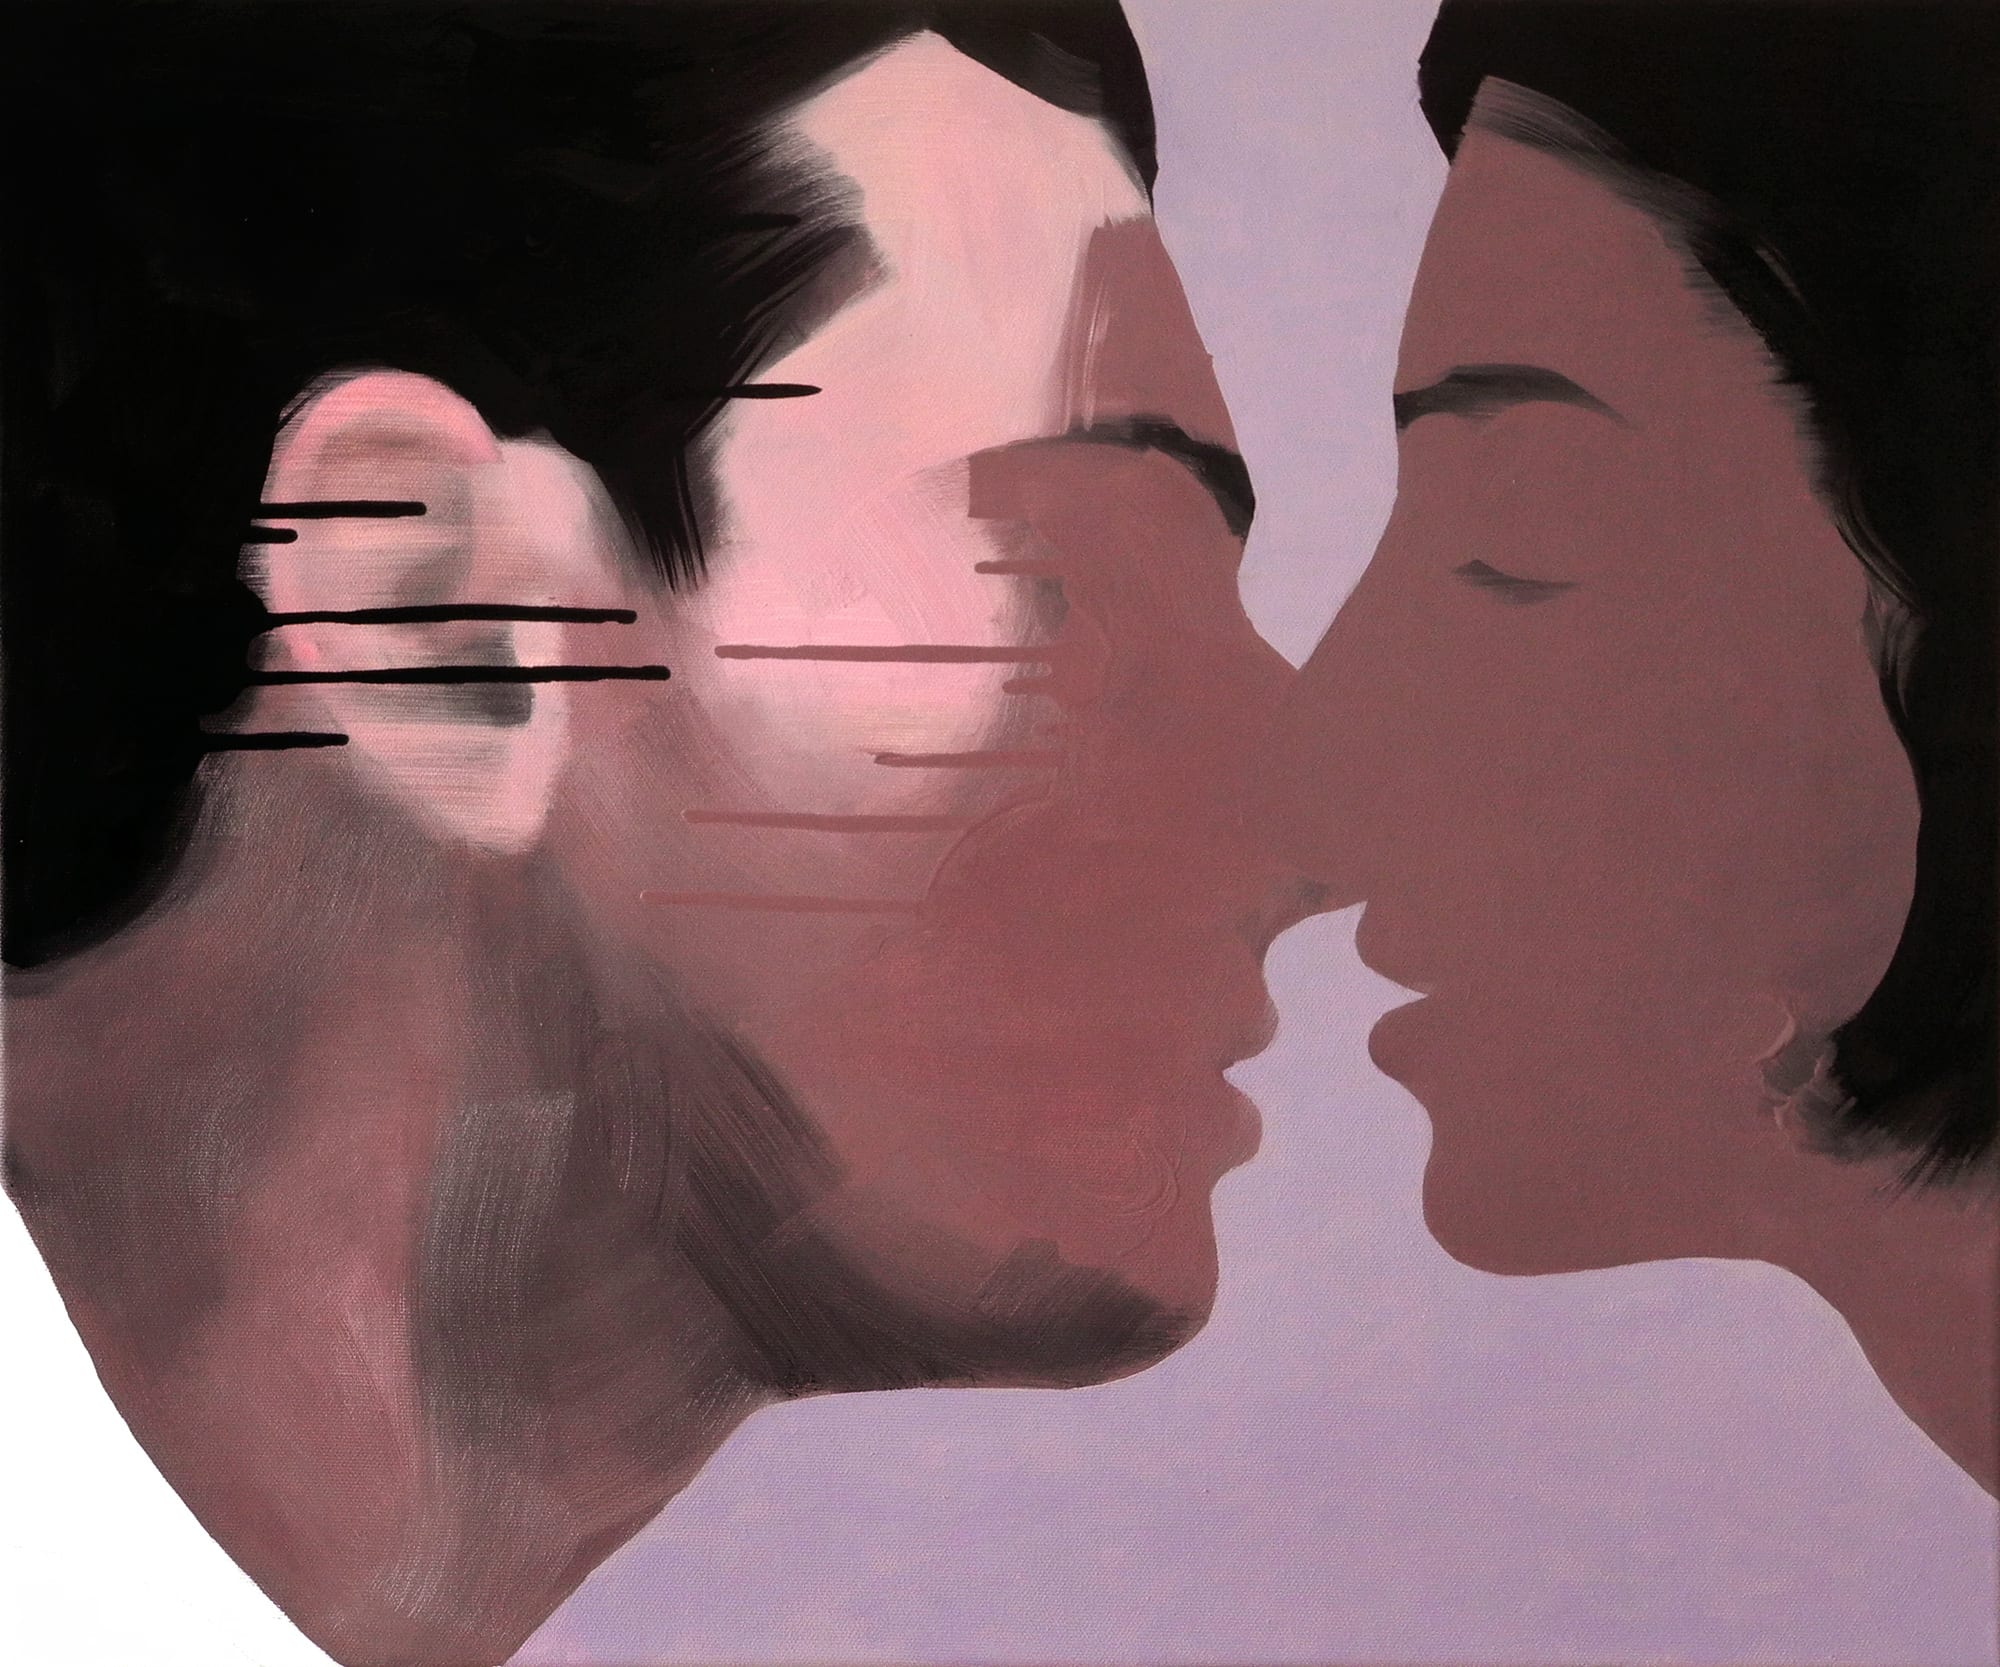 "<span class=""link fancybox-details-link""><a href=""/artists/54-jarek-puczel/works/576-jarek-puczel-lovers-permeation/"">View Detail Page</a></span><div class=""artist""><strong>Jarek Puczel</strong></div> <div class=""title""><em>Lovers - Permeation</em></div> <div class=""medium"">Oil on Canvas </div> <div class=""dimensions"">20 x 24 inches </div>"